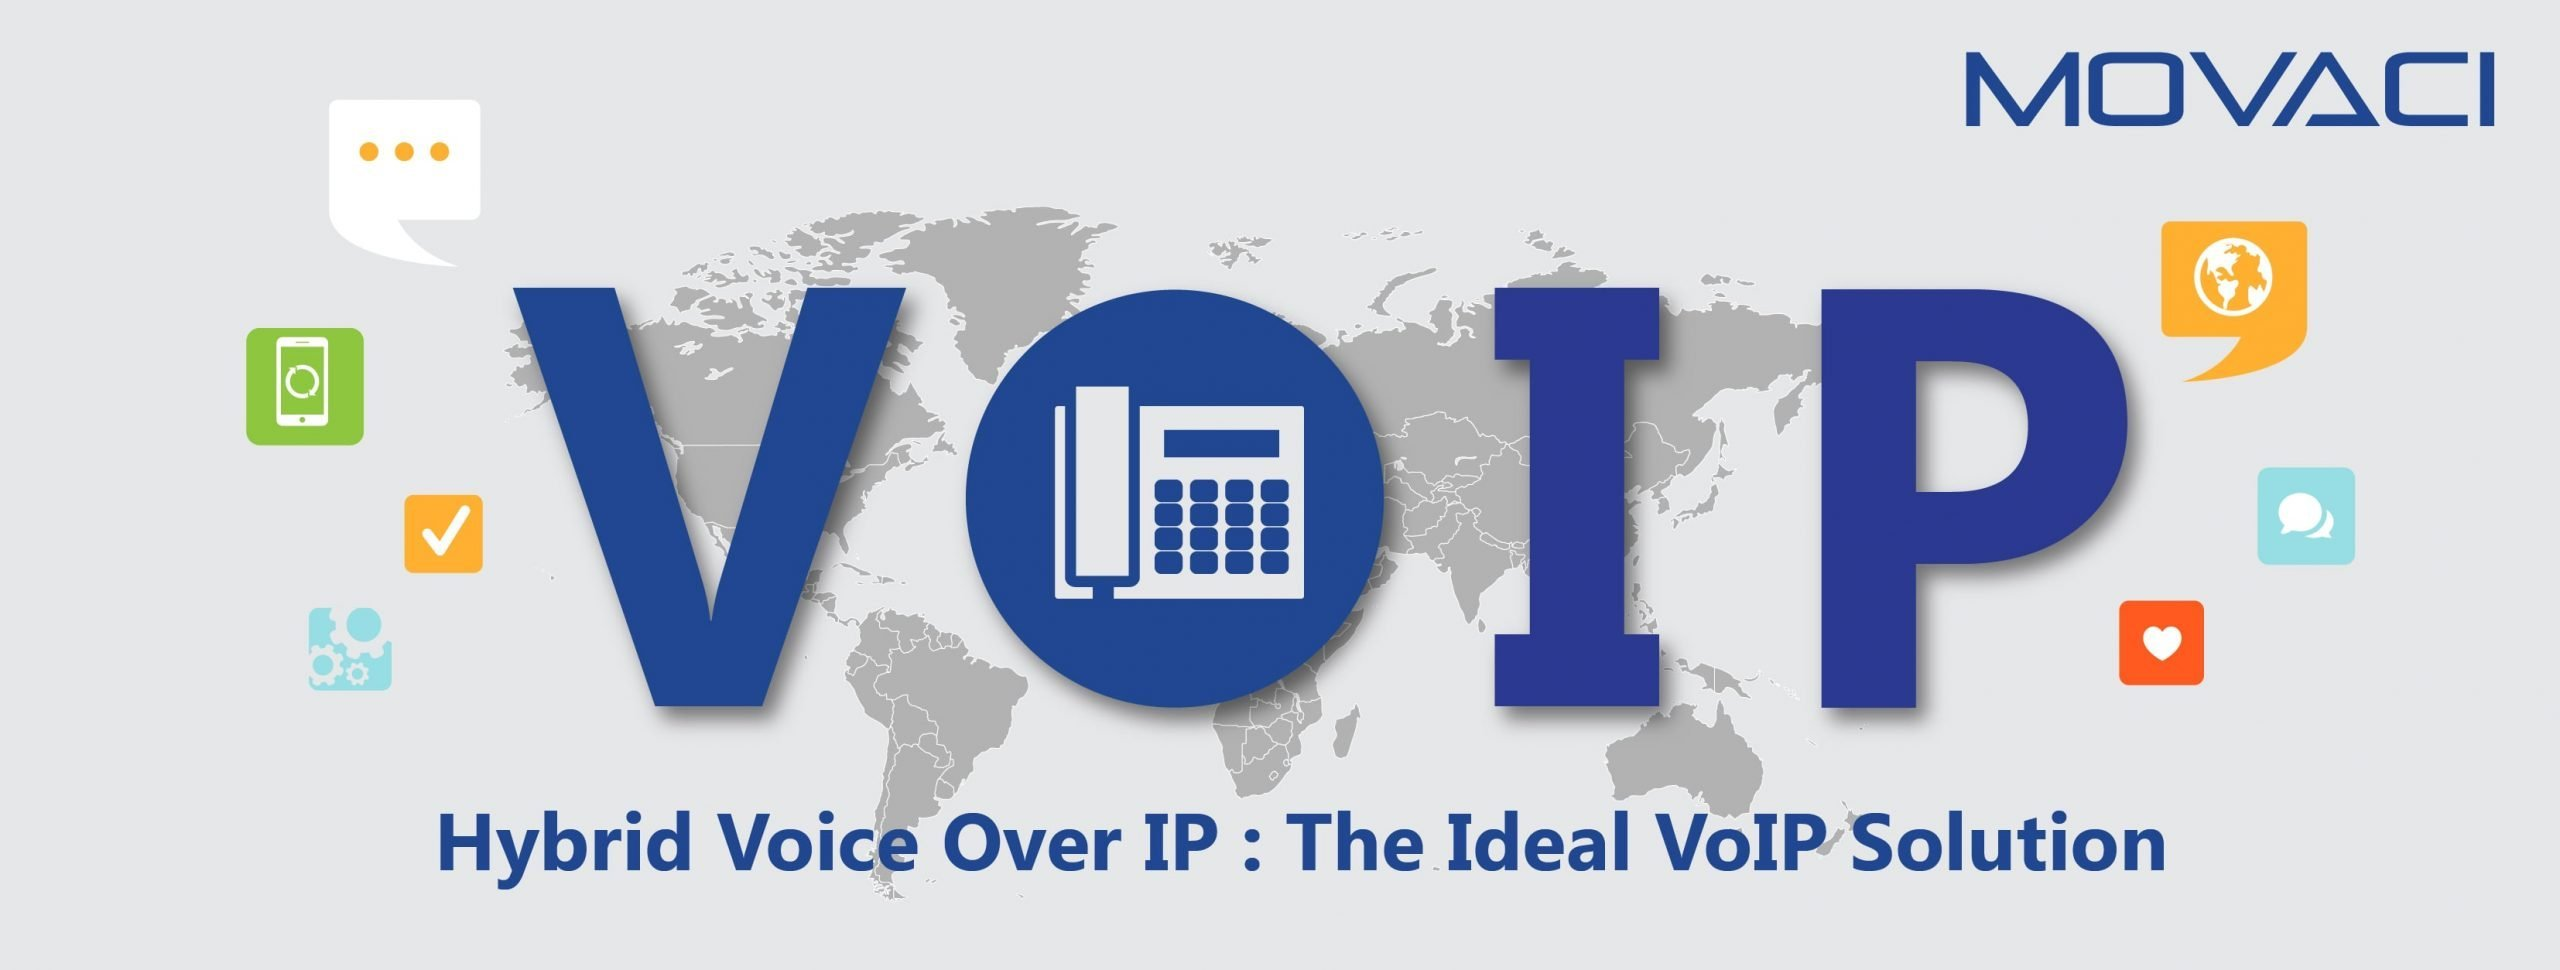 Hybrid Voice over IP: The Ideal VoIP Solution 1